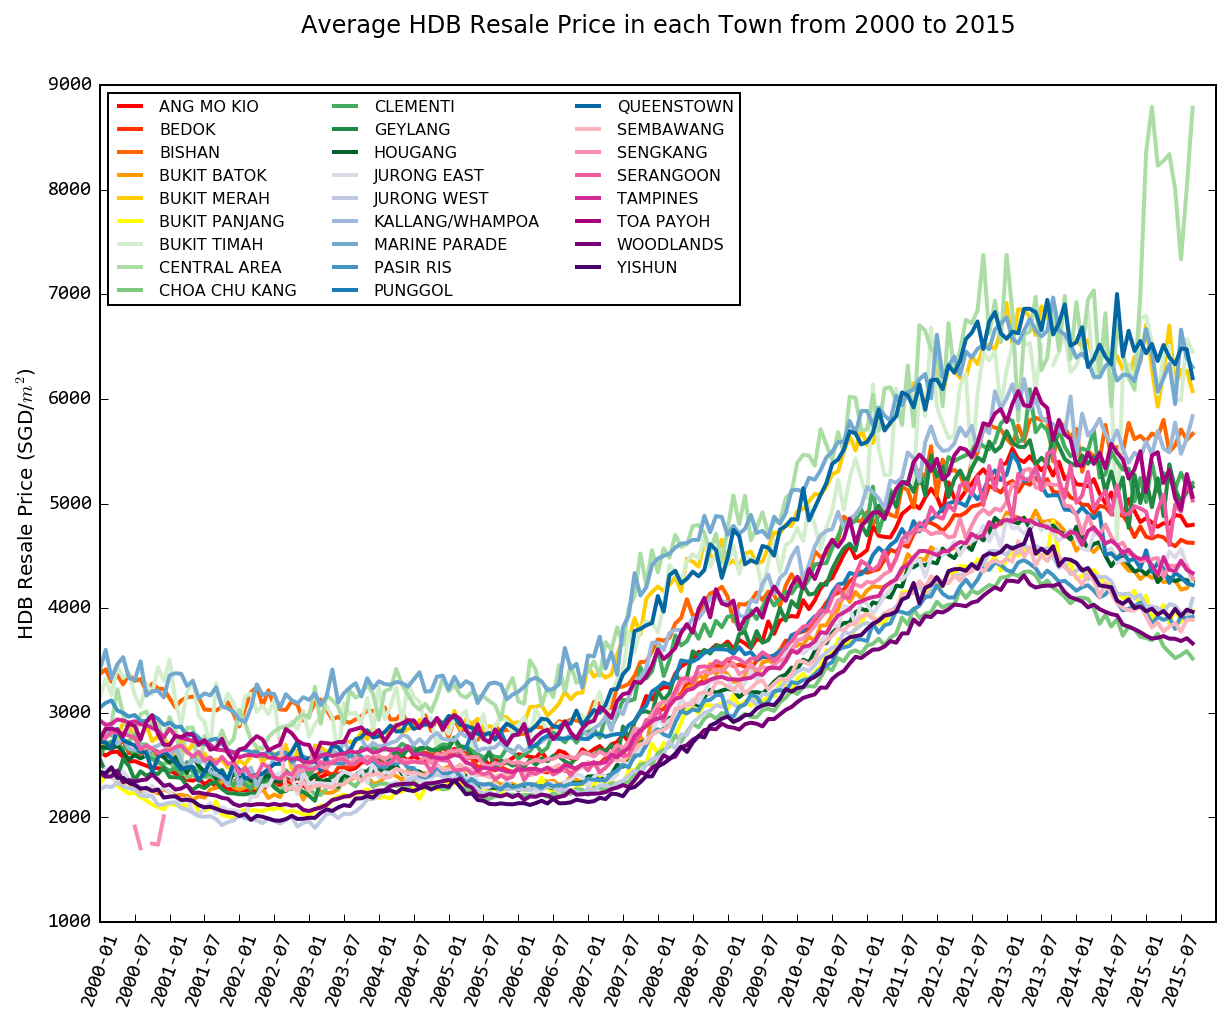 Average HDB Resale Price in each Town from 2000 to 2015